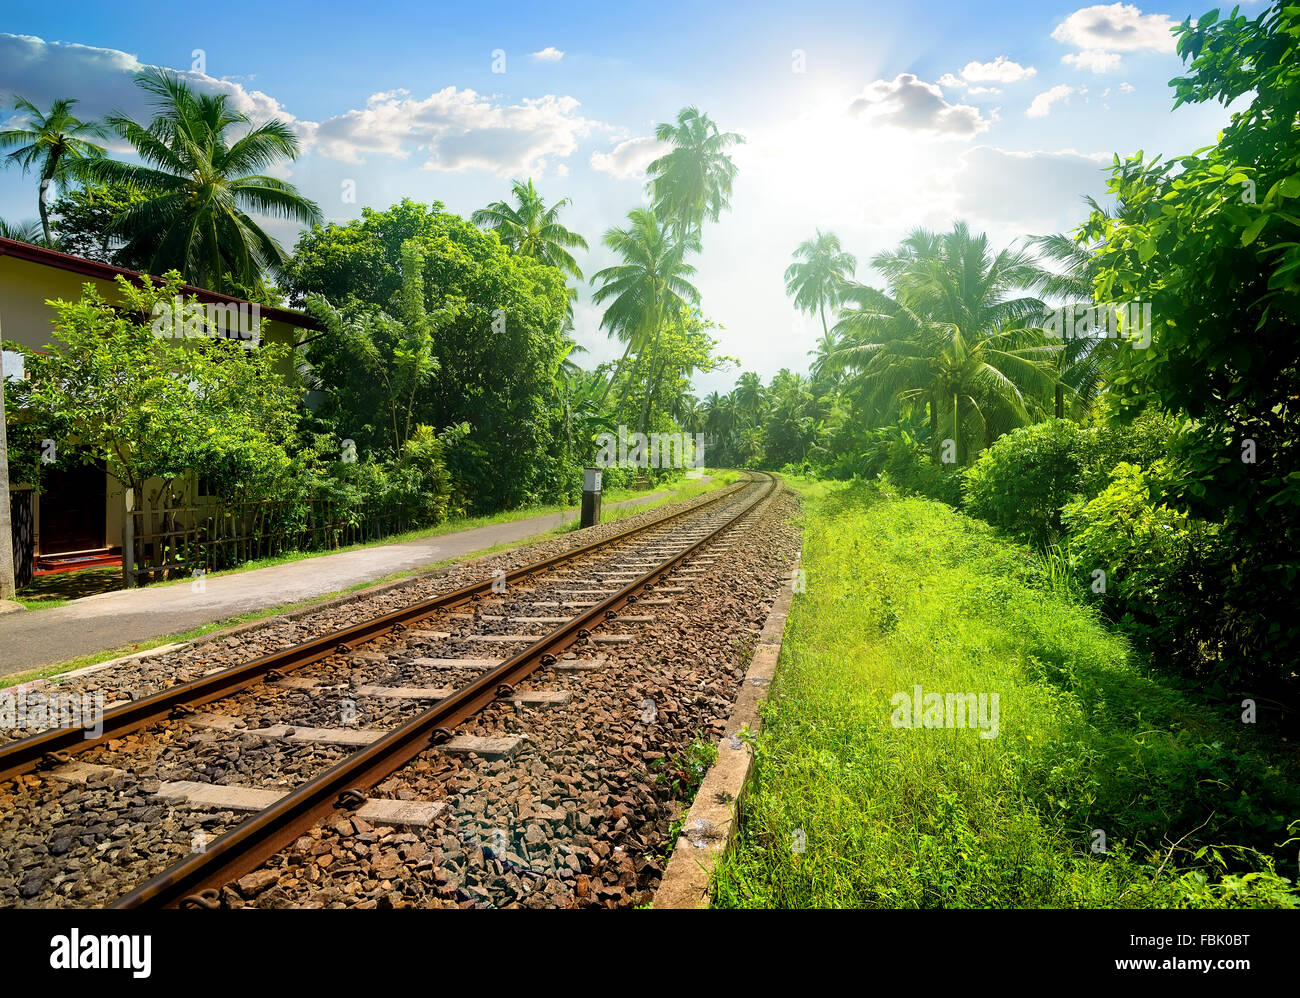 Railroad through green palm forest in Sri Lanka Stock Photo